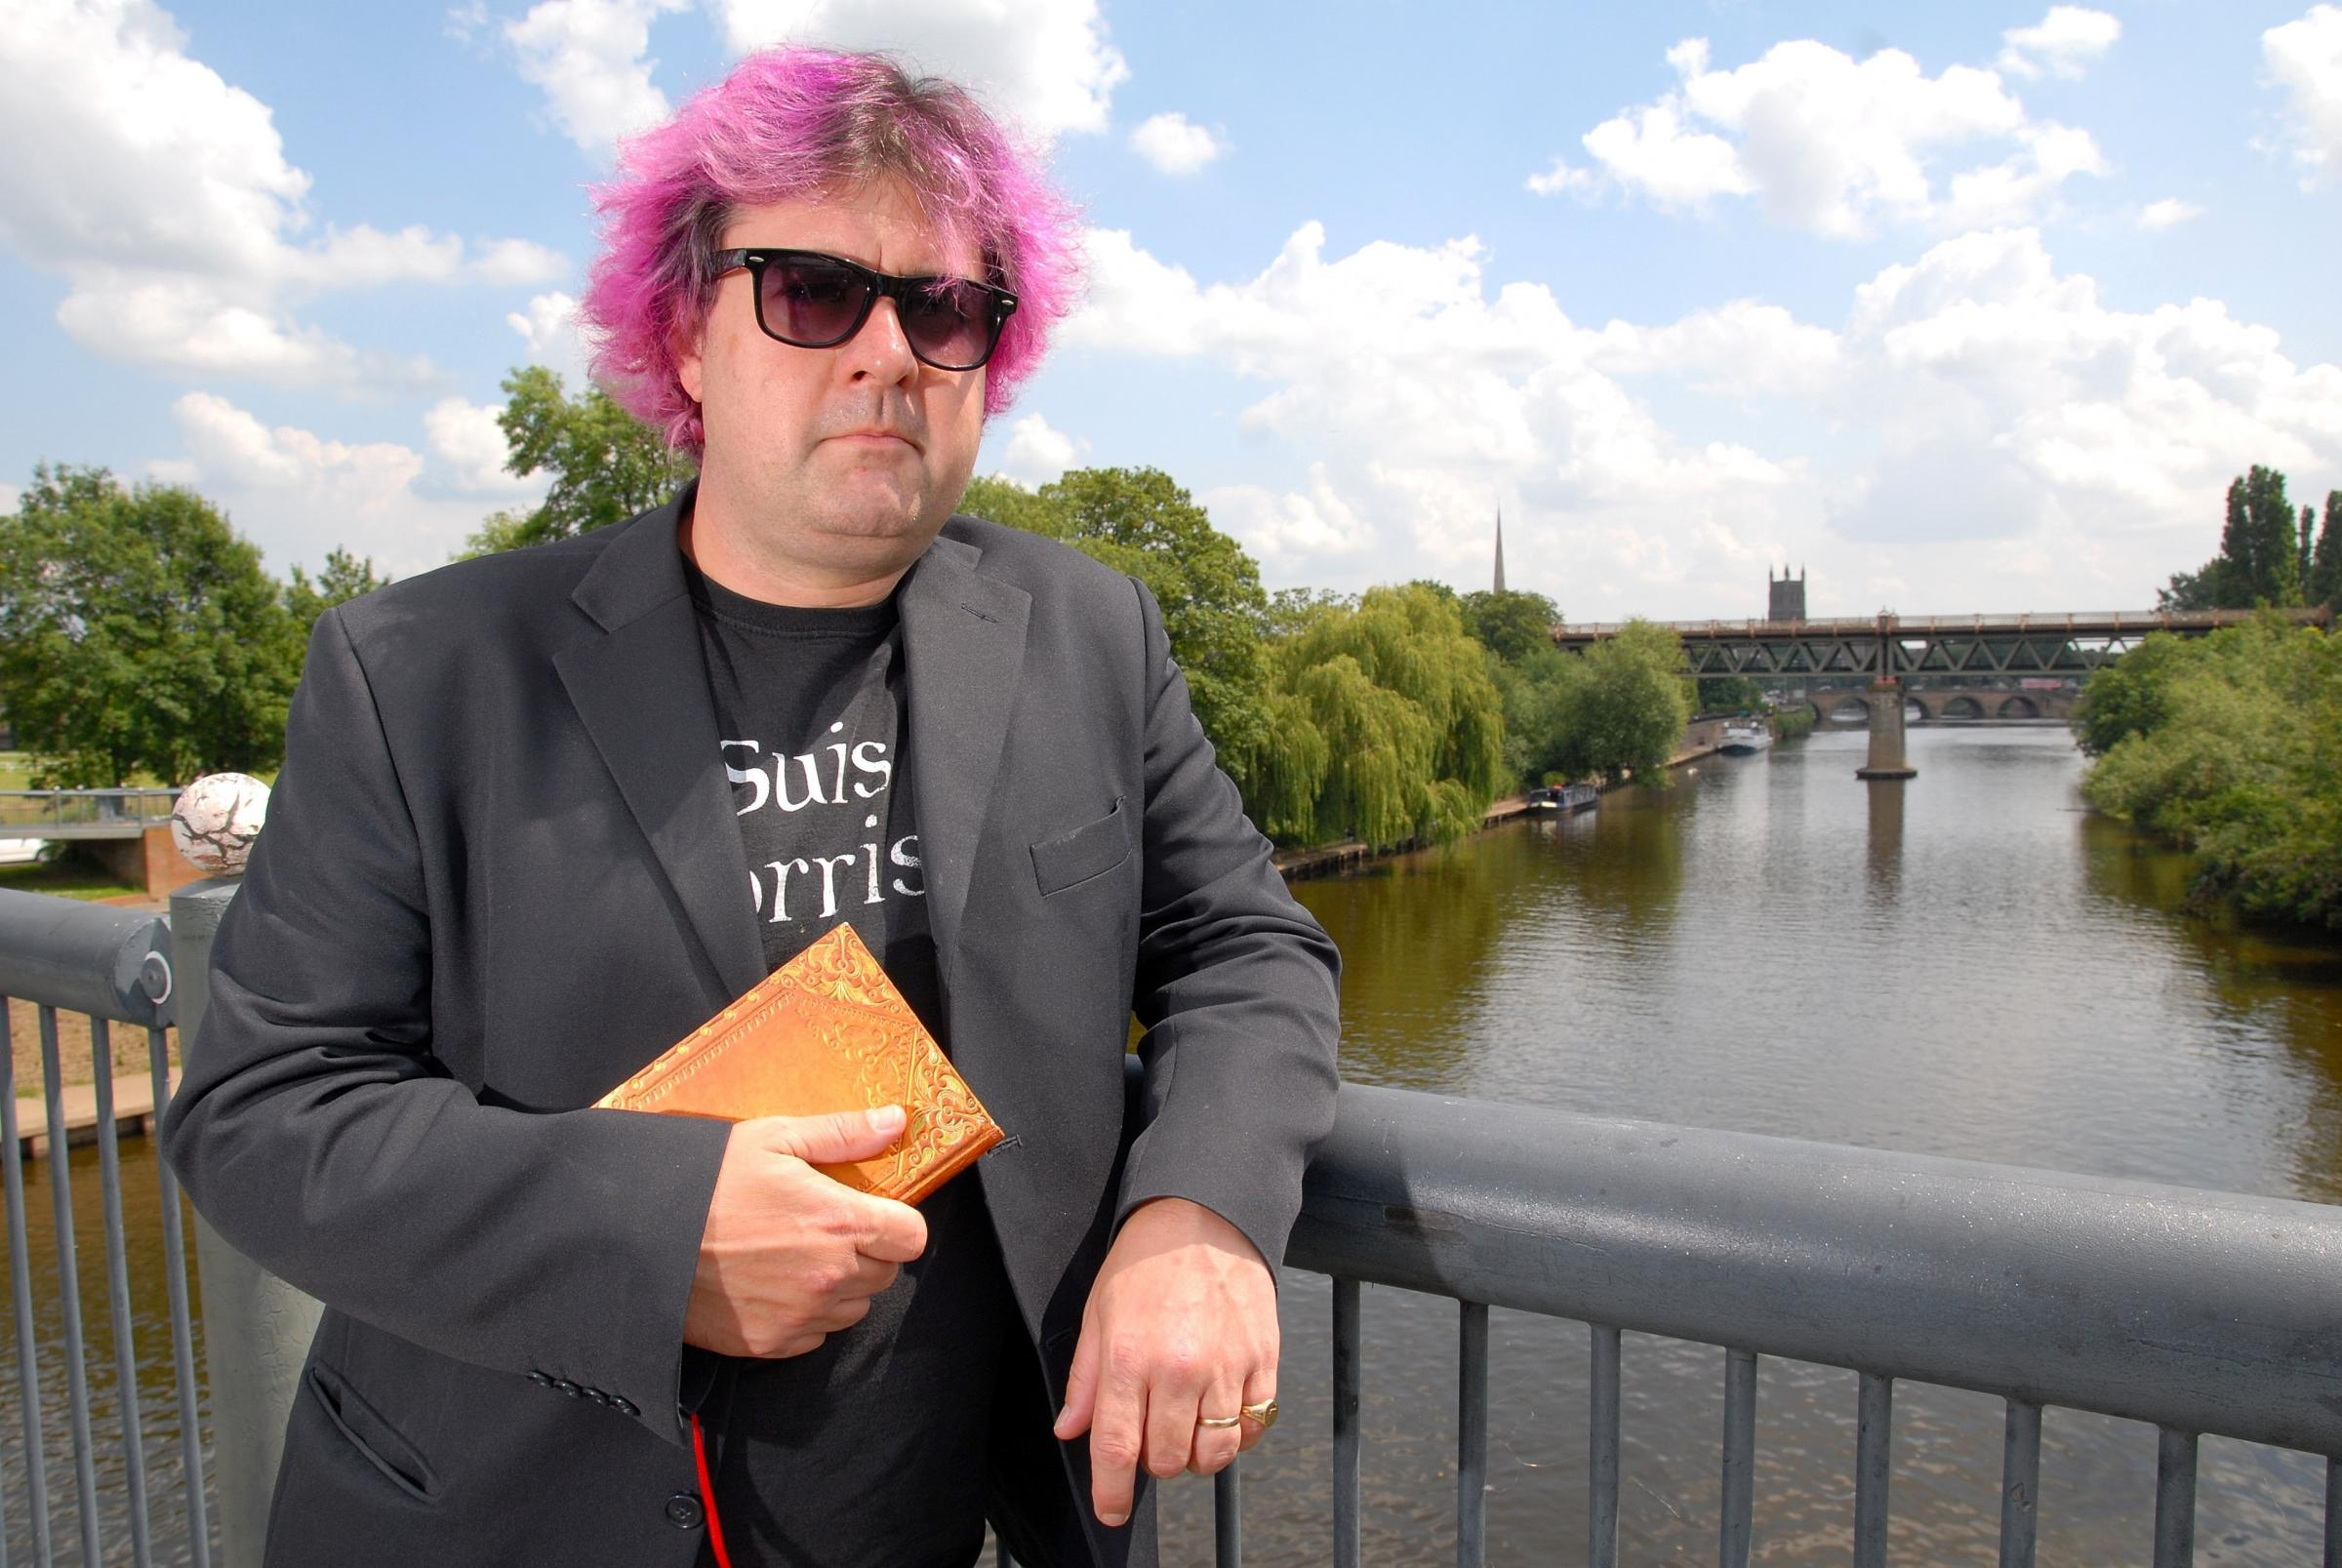 """It's just sinking in!"" - Fergus delighted to be named county's new poet laureate"